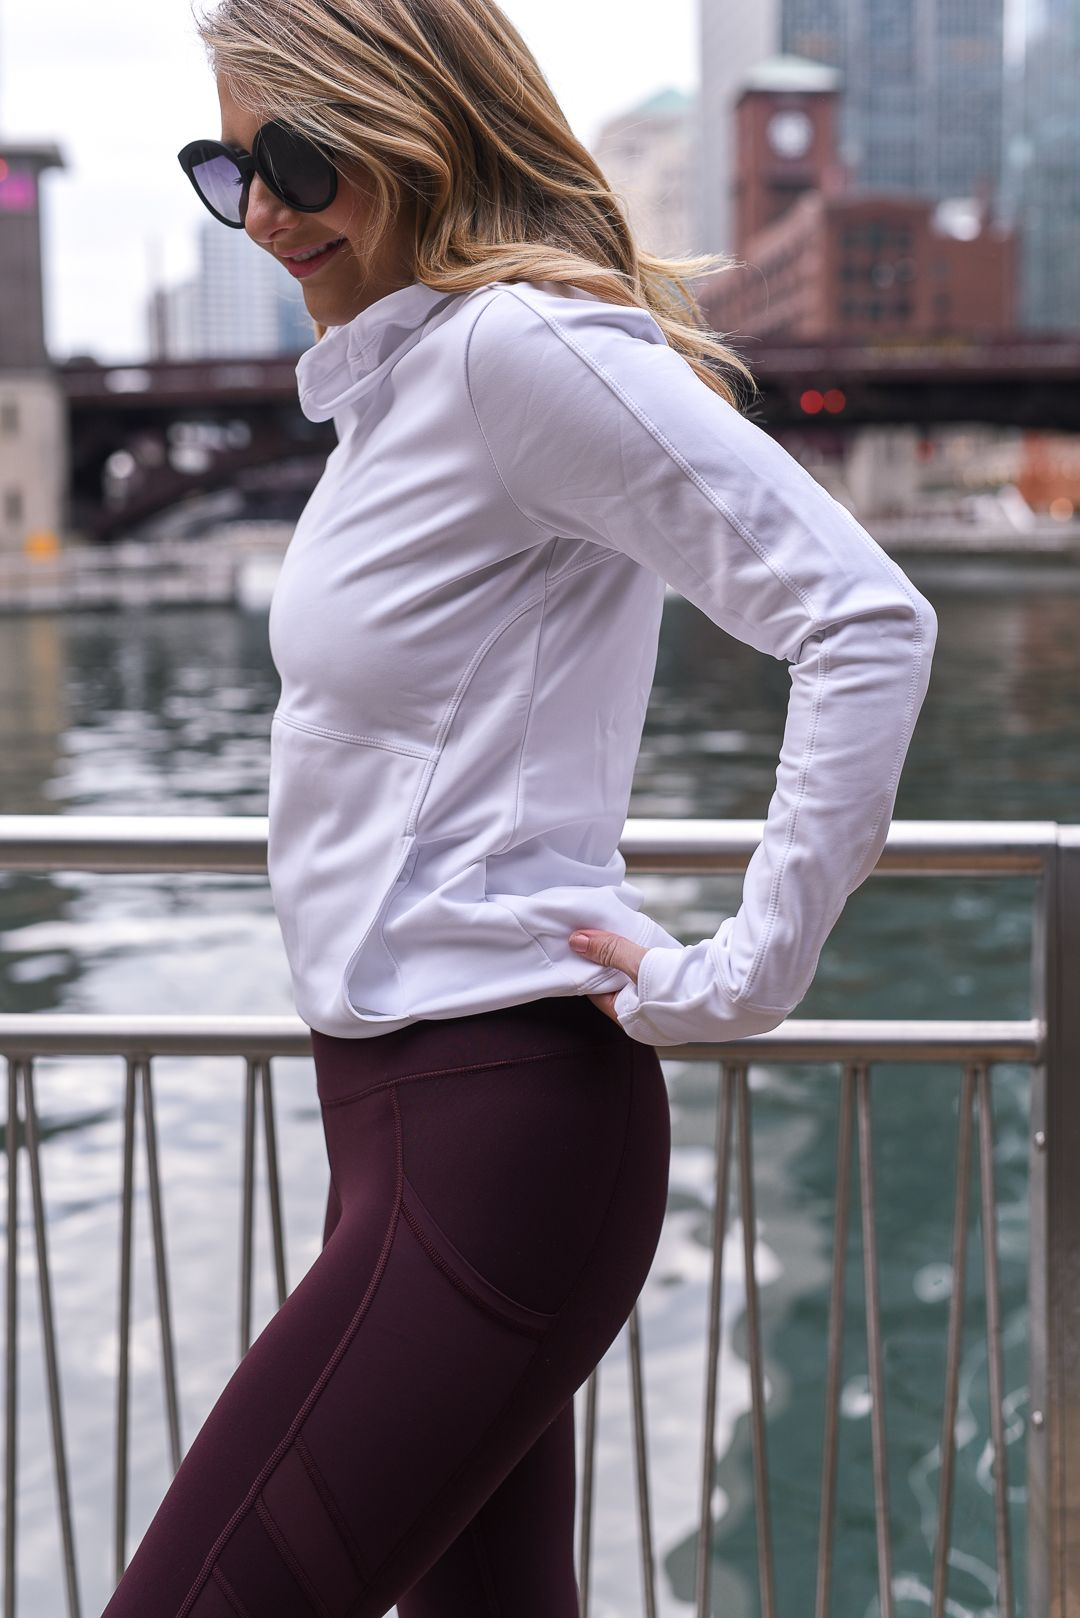 Winter Workout Clothing With Athleta